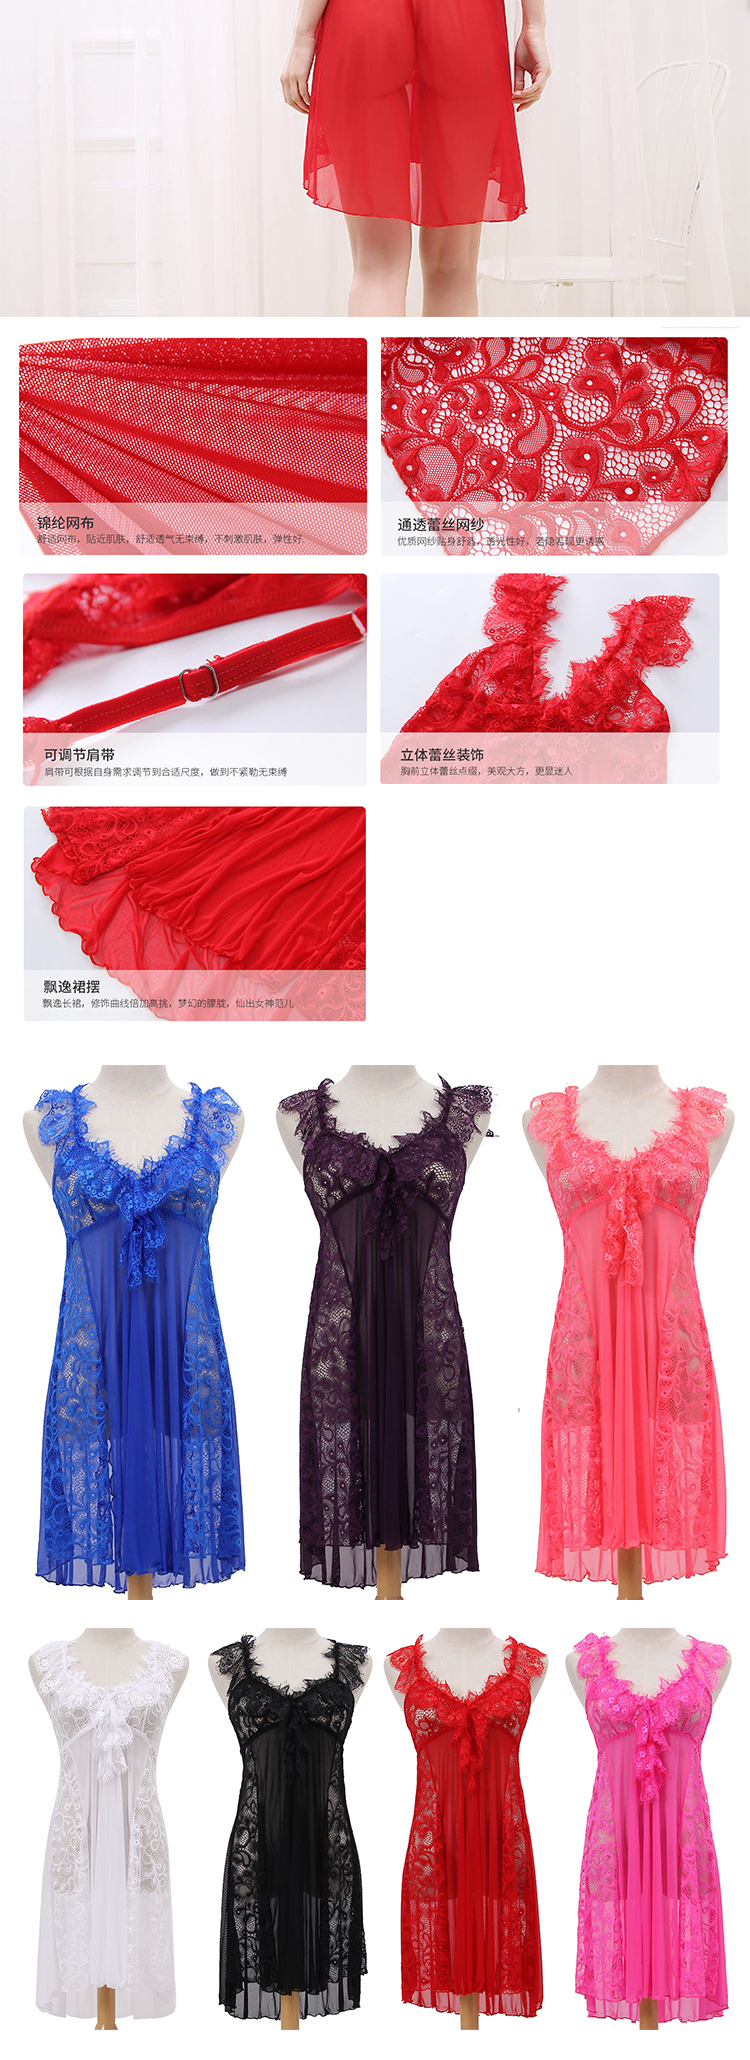 HSZ 8334  Western Style Wholesale Sleepwear Adult Women Sexy Lace sleeveless garment nightgowns